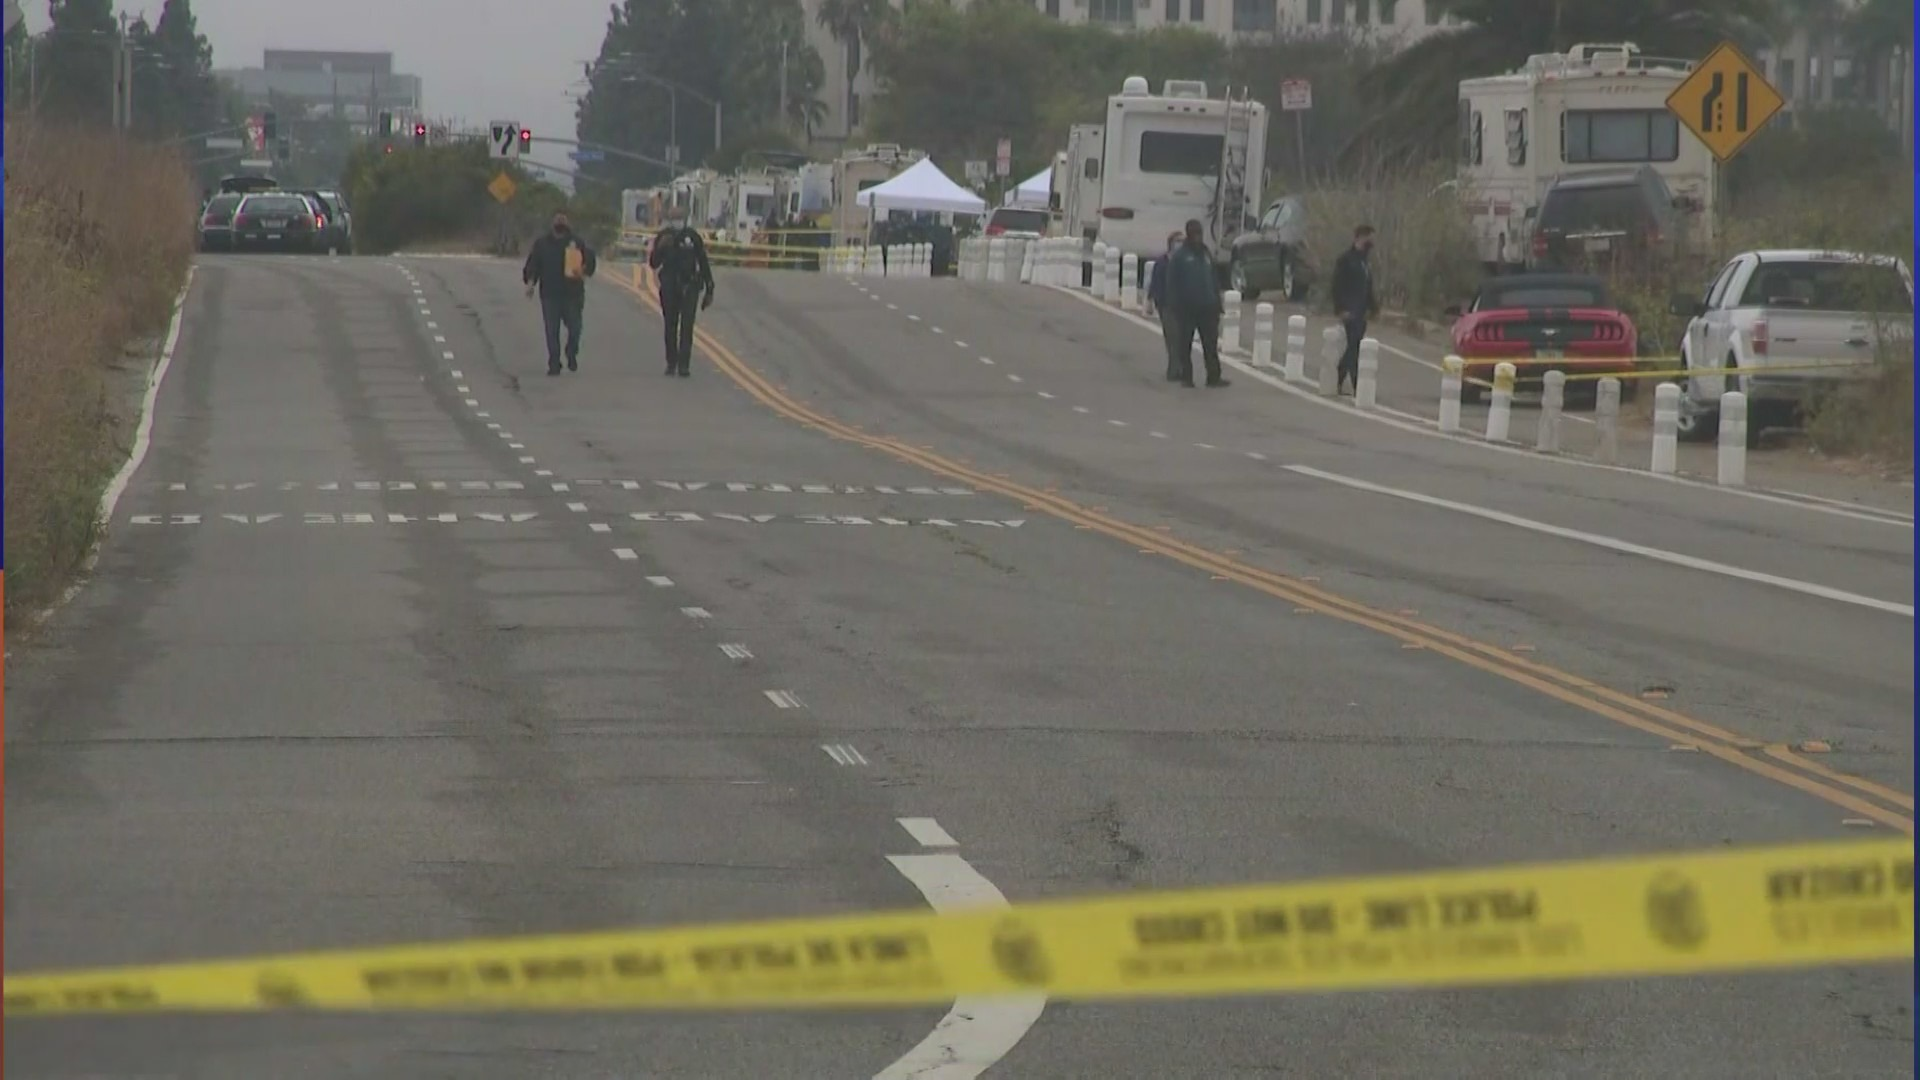 Four people believed to be homeless were wounded in a predawn shooting in Playa del Rey on Aug. 18, 2021. (KTLA)